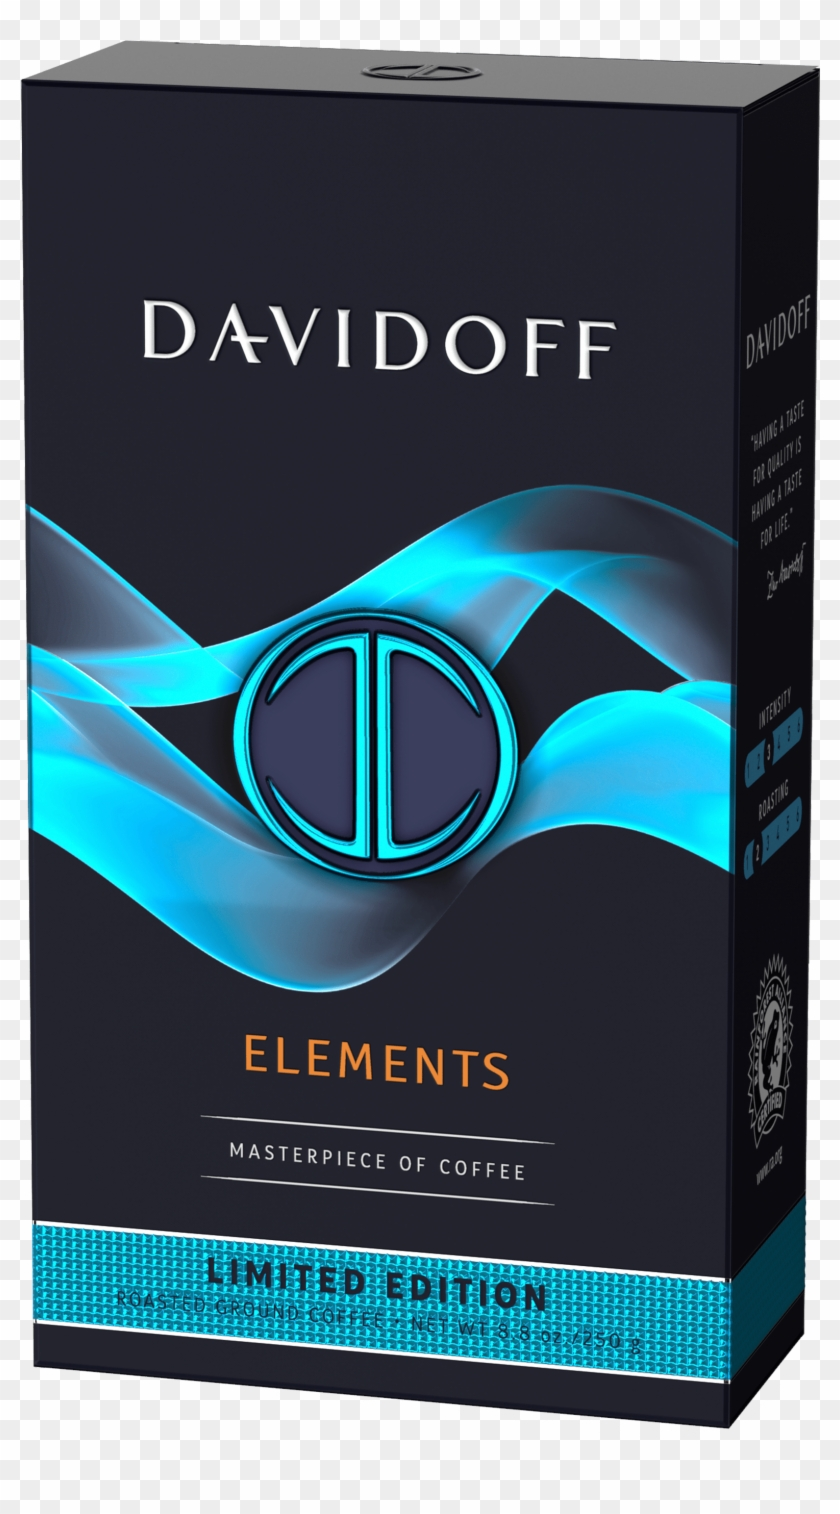 Davidoff Limited Edition Coffee, HD Png Download - 4069x4069